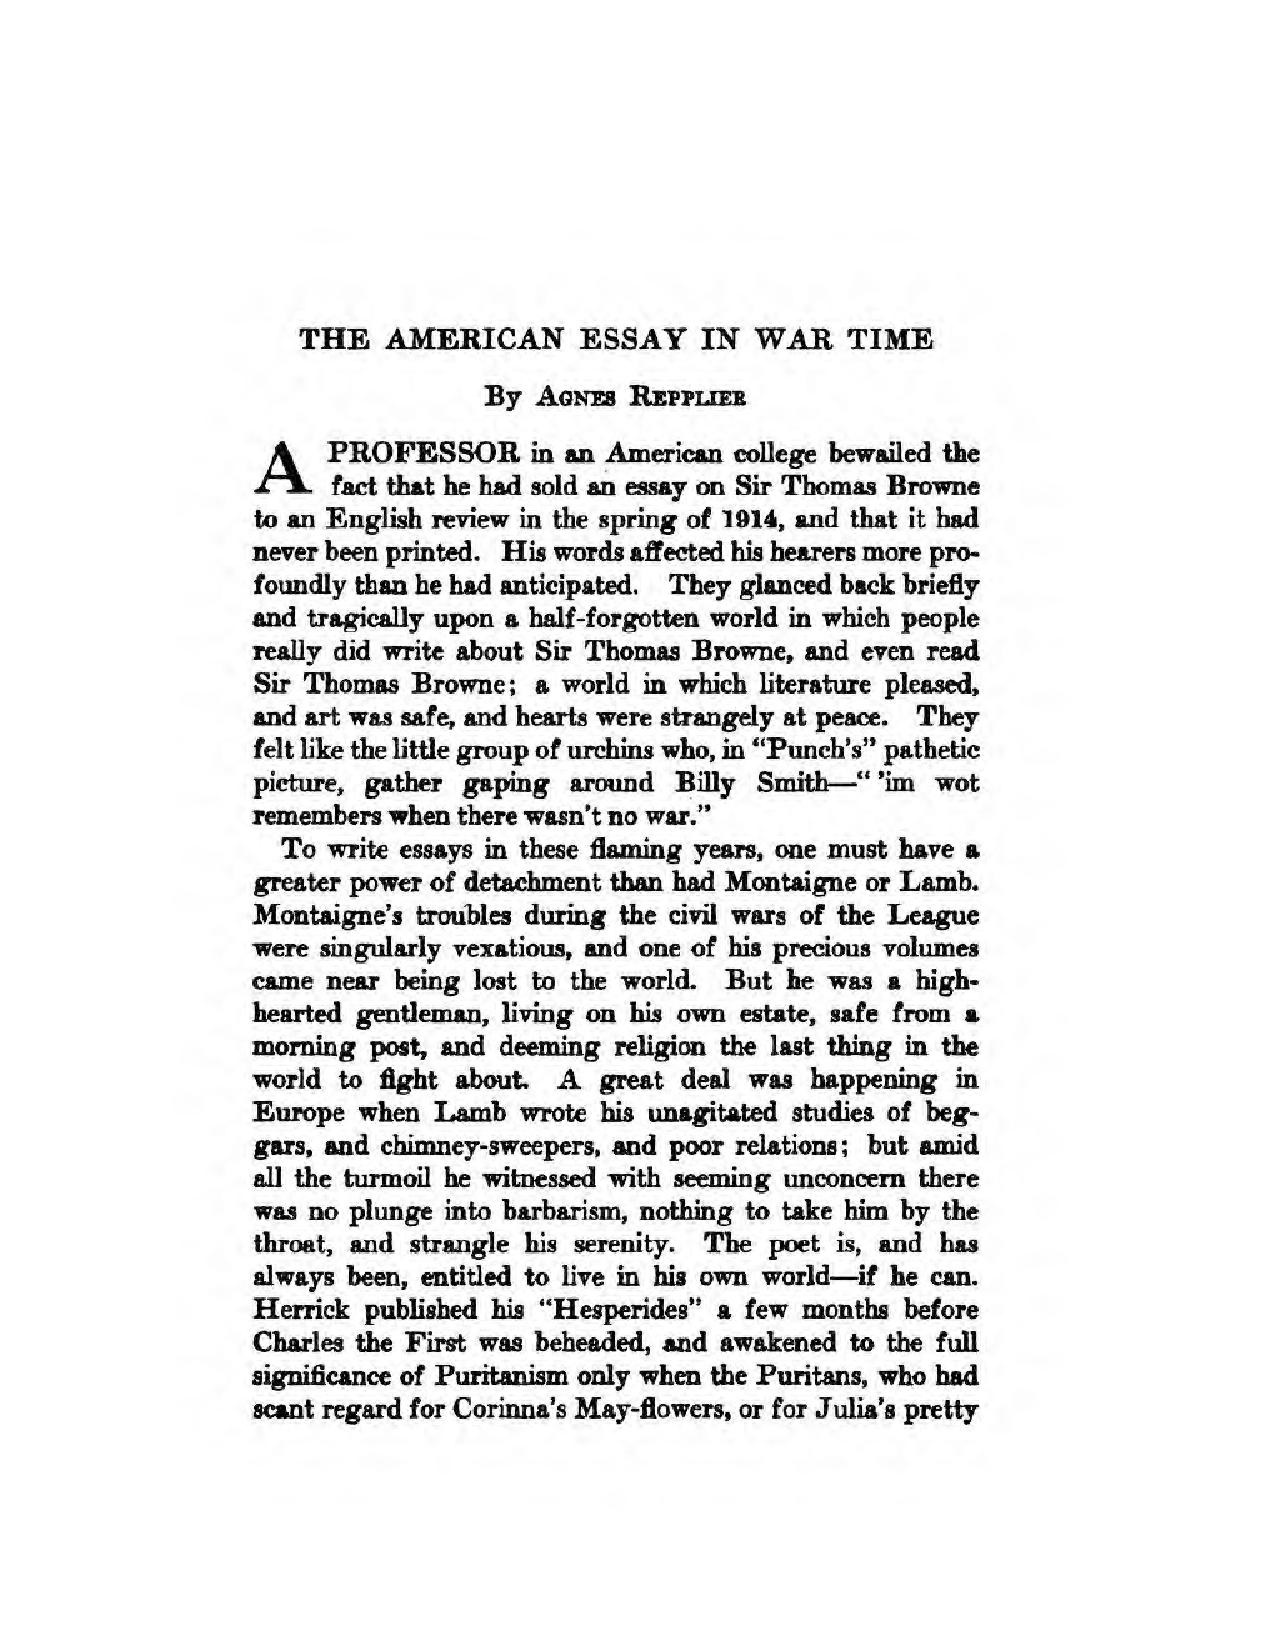 009 Essay Example What Is An American Page1 1275px The In War Time2c Agnes Repplier2c 1918 Stupendous Ideas Definition Crevecoeur Summary Full